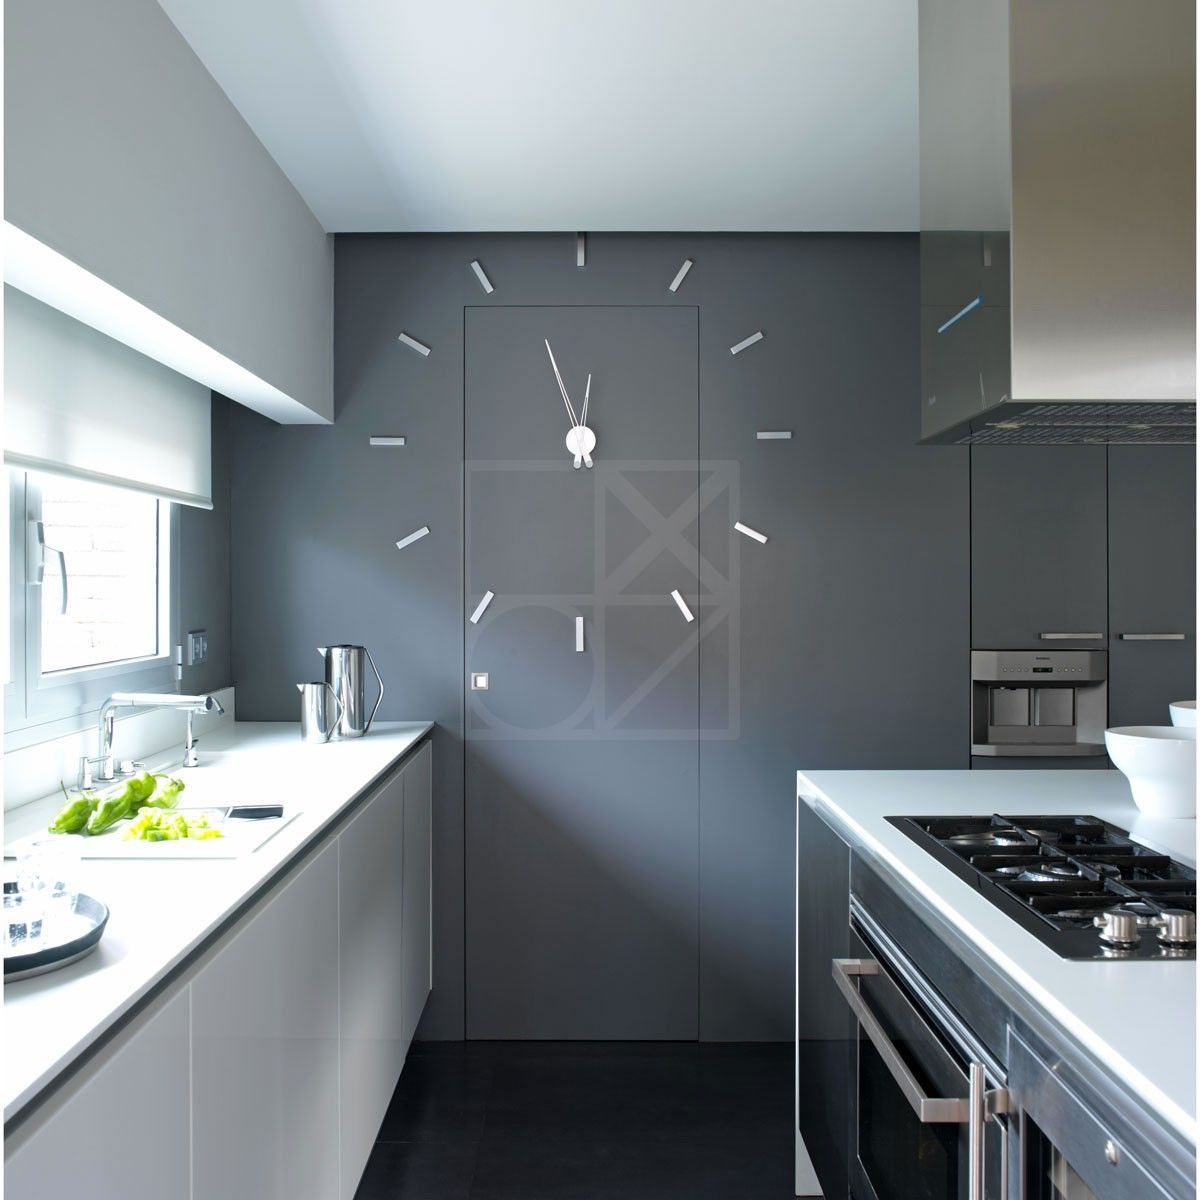 horloge murale design horloge nomon tacon 12 quelle heure est il pinterest horloge. Black Bedroom Furniture Sets. Home Design Ideas